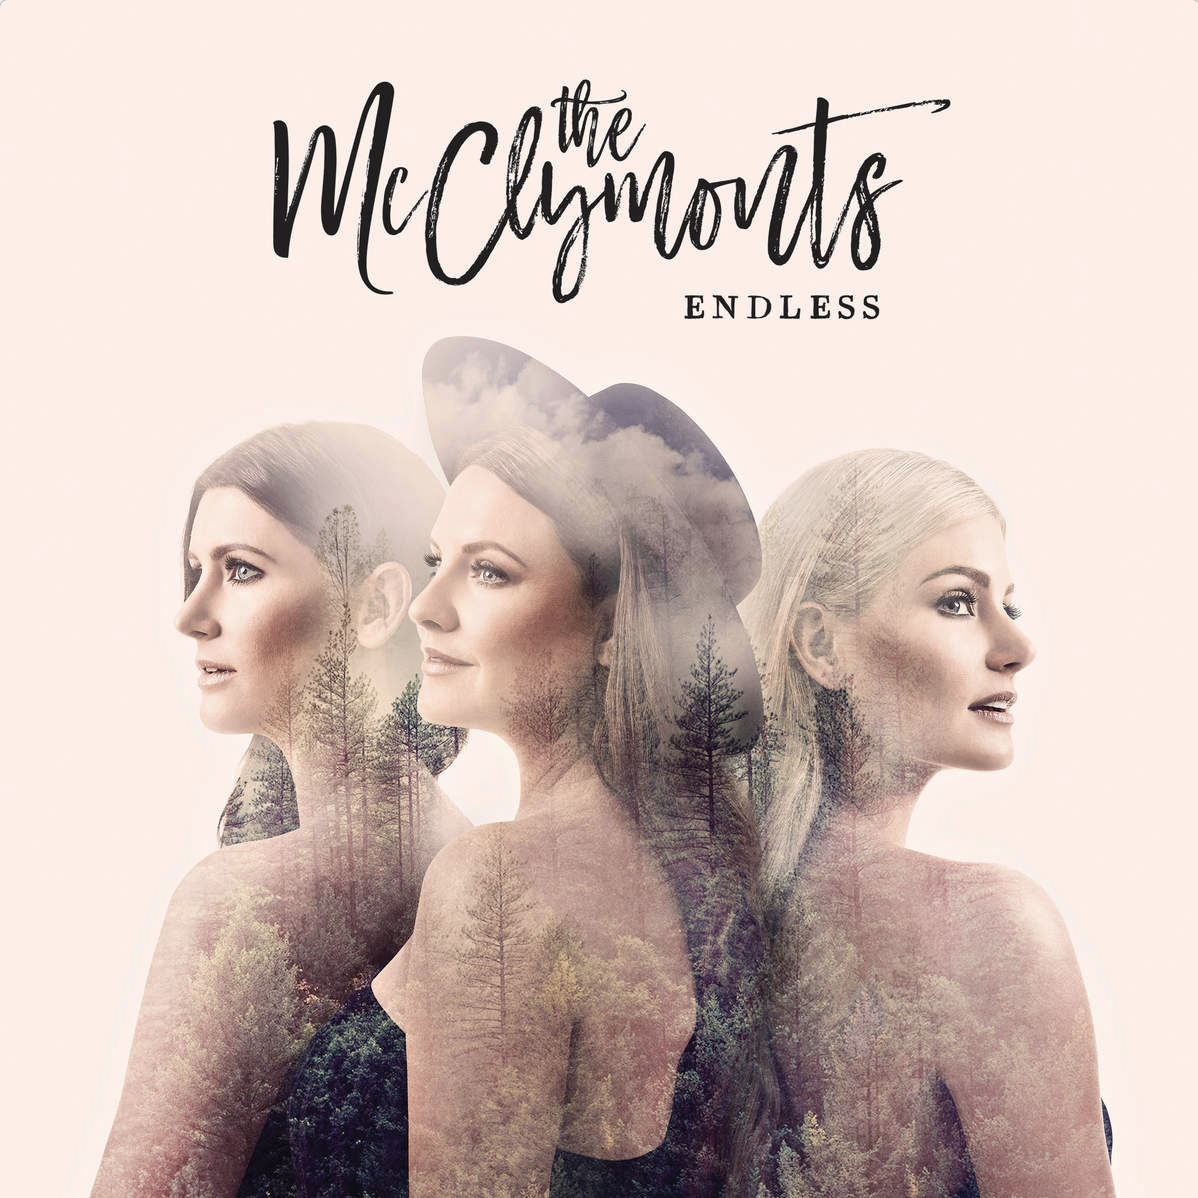 Don't Wish It All Away - The McClymonts - Co-writerReleased as a single by UMAAlbum containing the single debuted at #3 on the ARIA Albums chartTop 5 Country Music Airplay in Australia